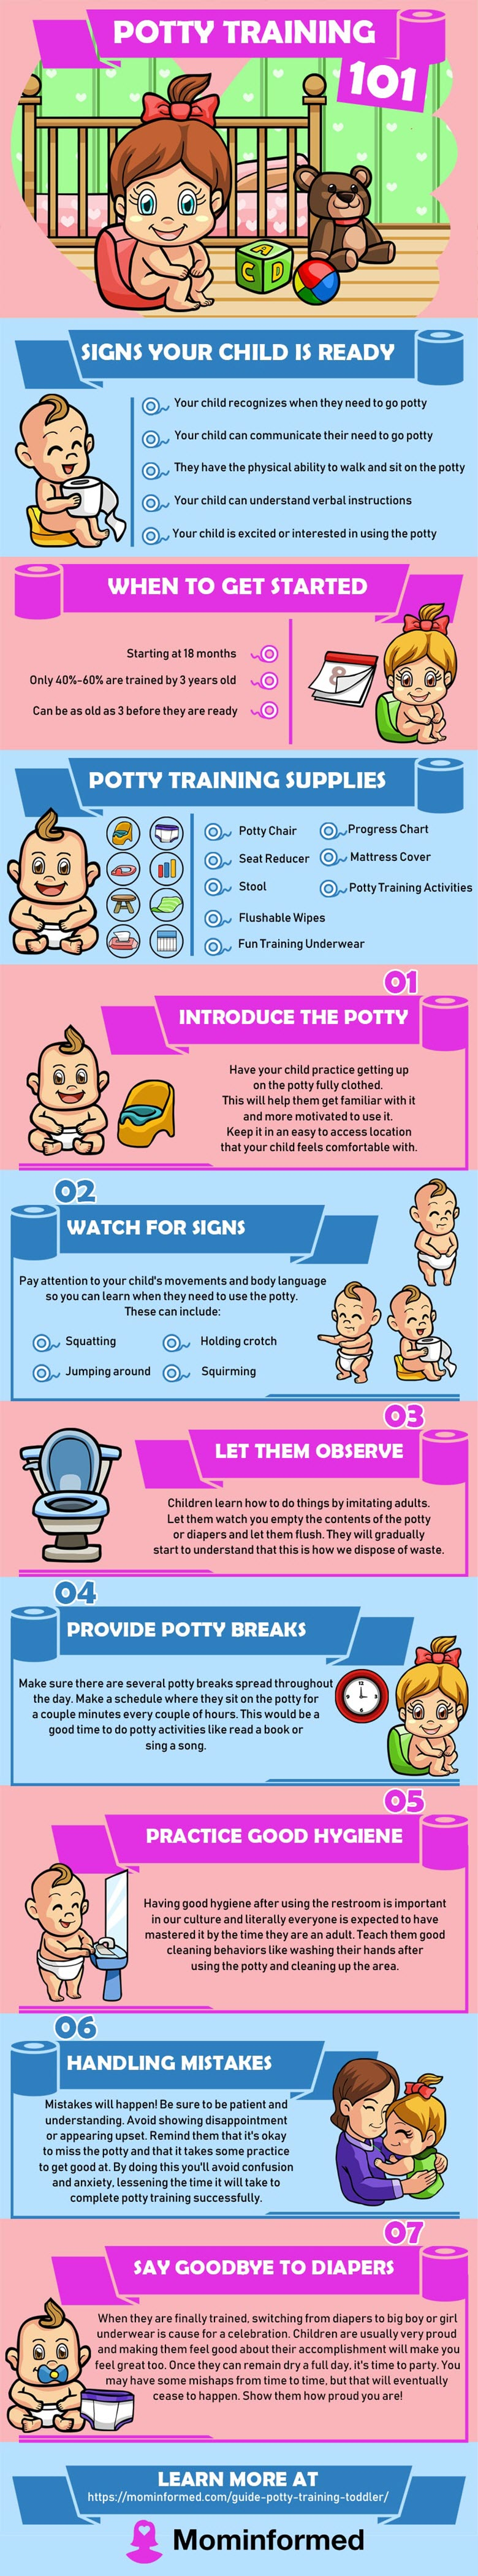 Potty Training 101 Infographic MomInformed.com